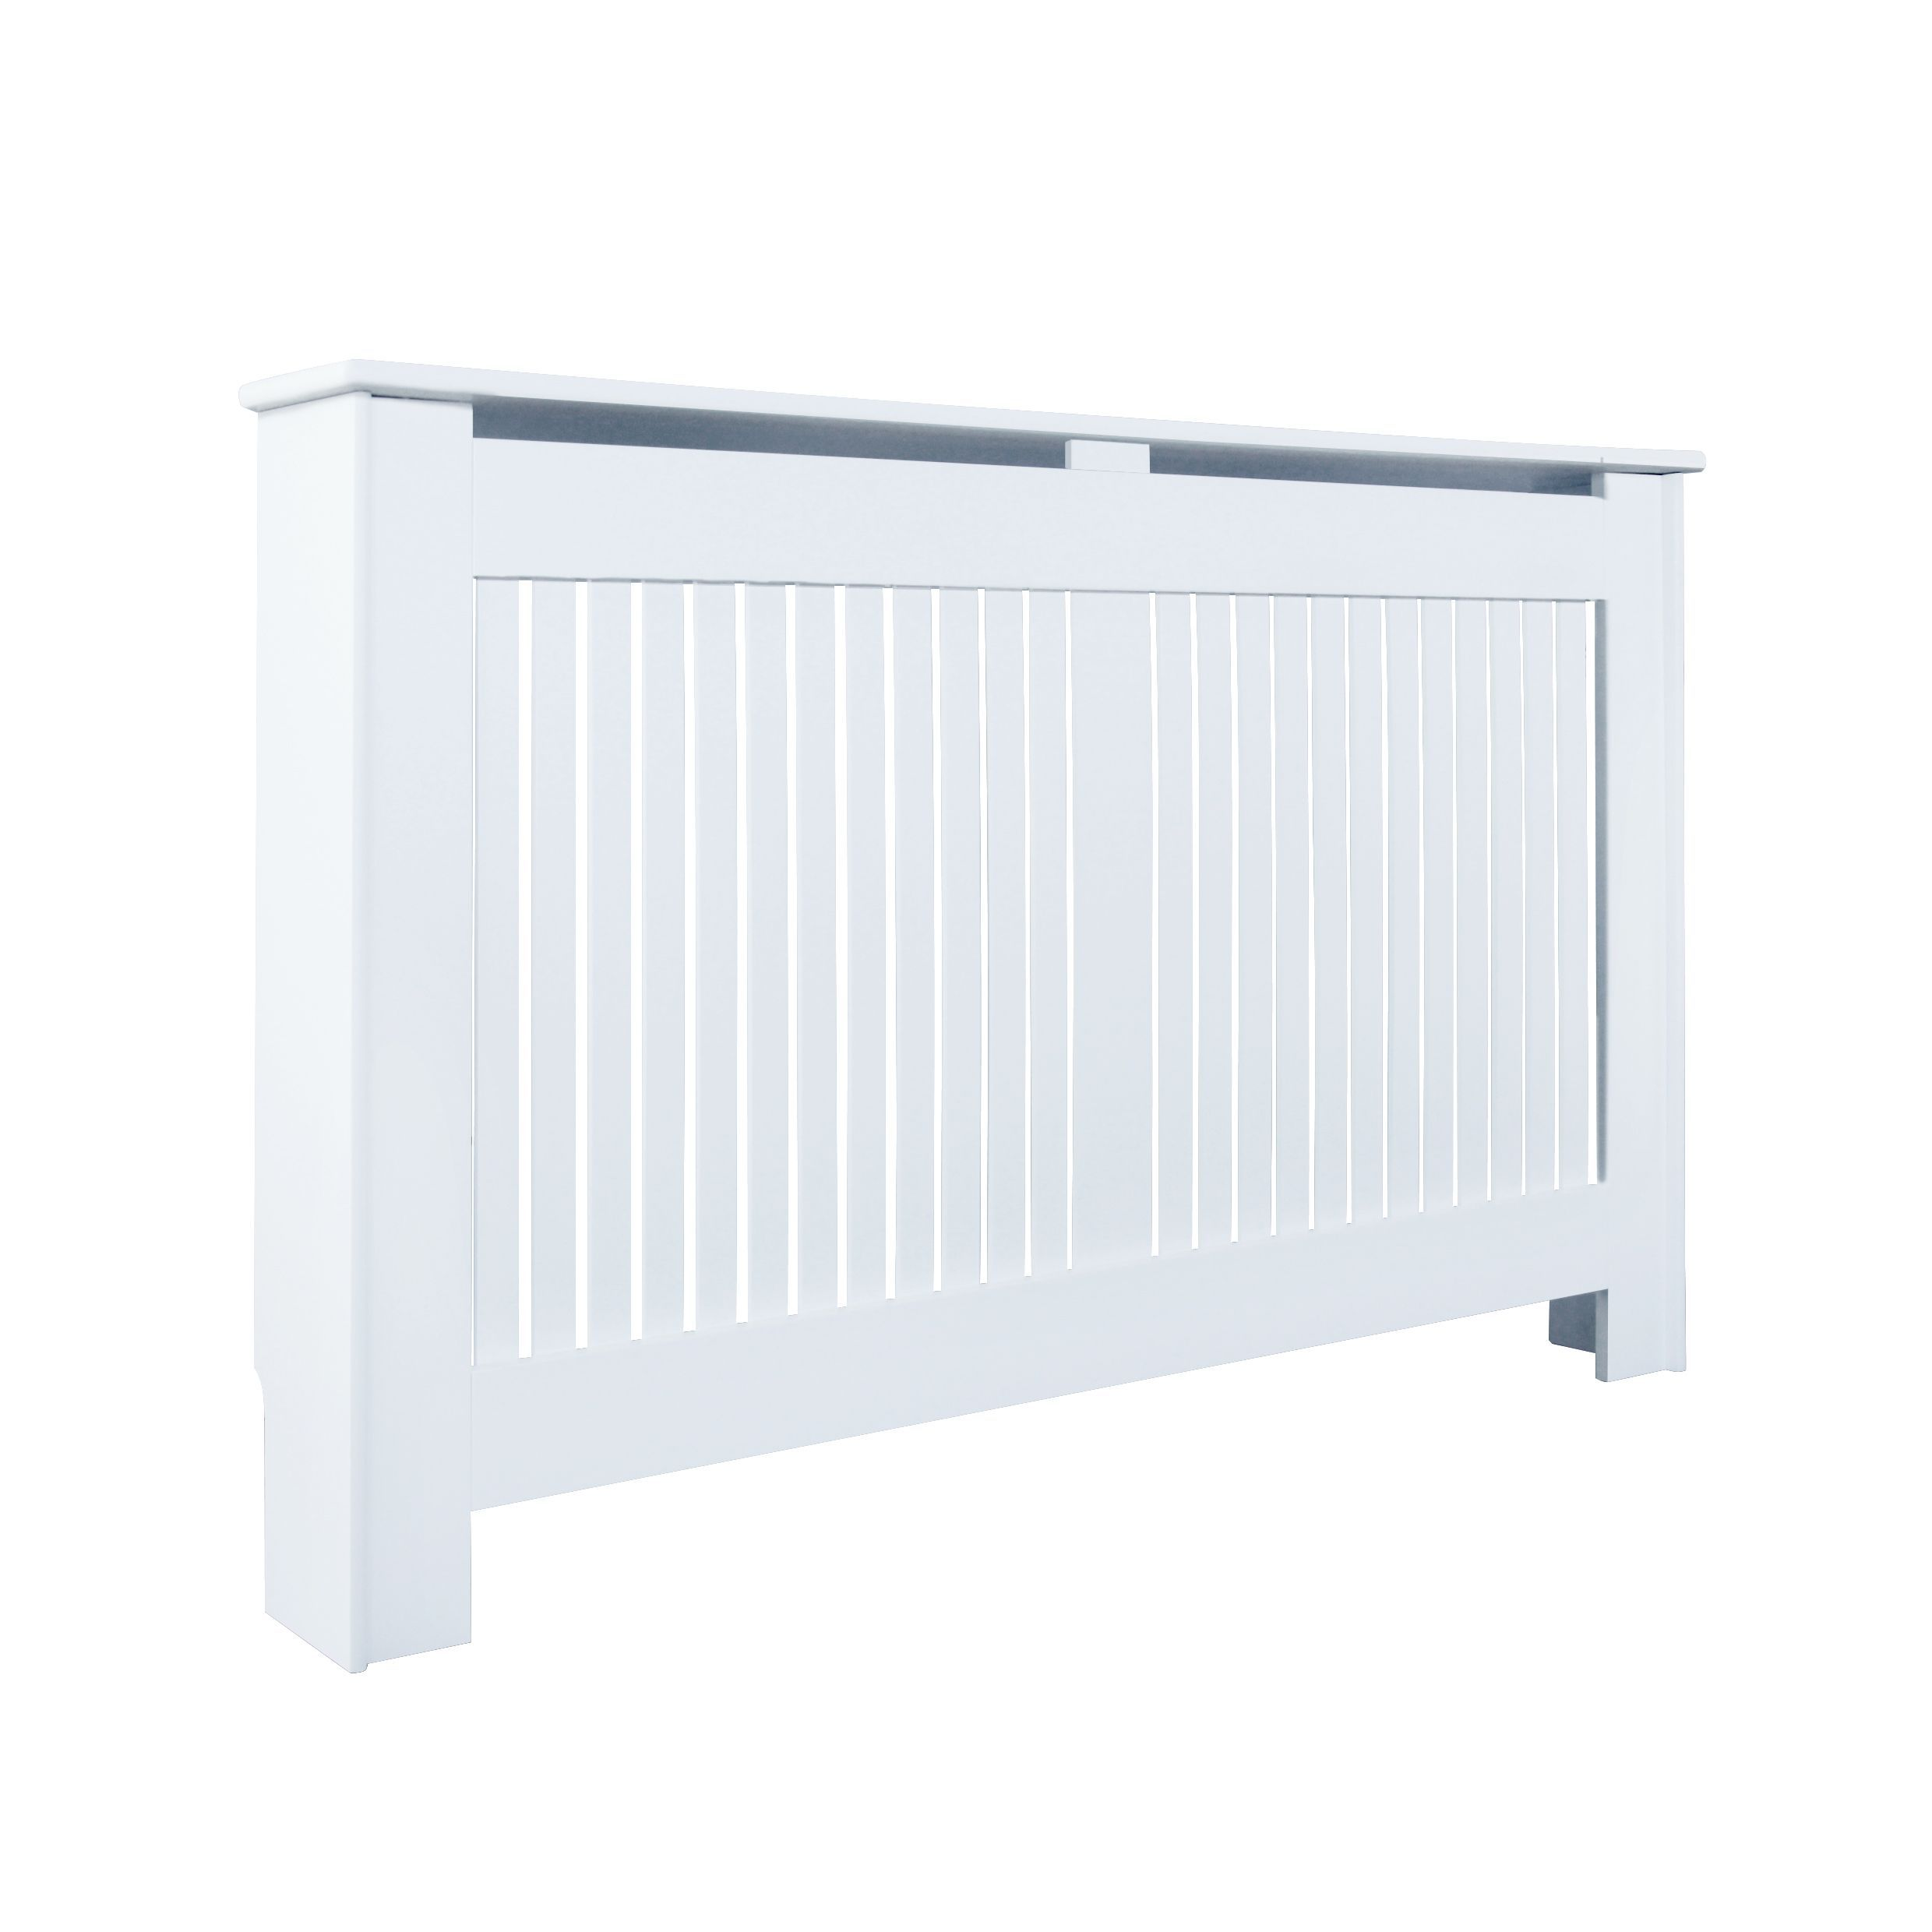 Kensington Large White Painted Radiator Cover | Departments | DIY at B&Q.